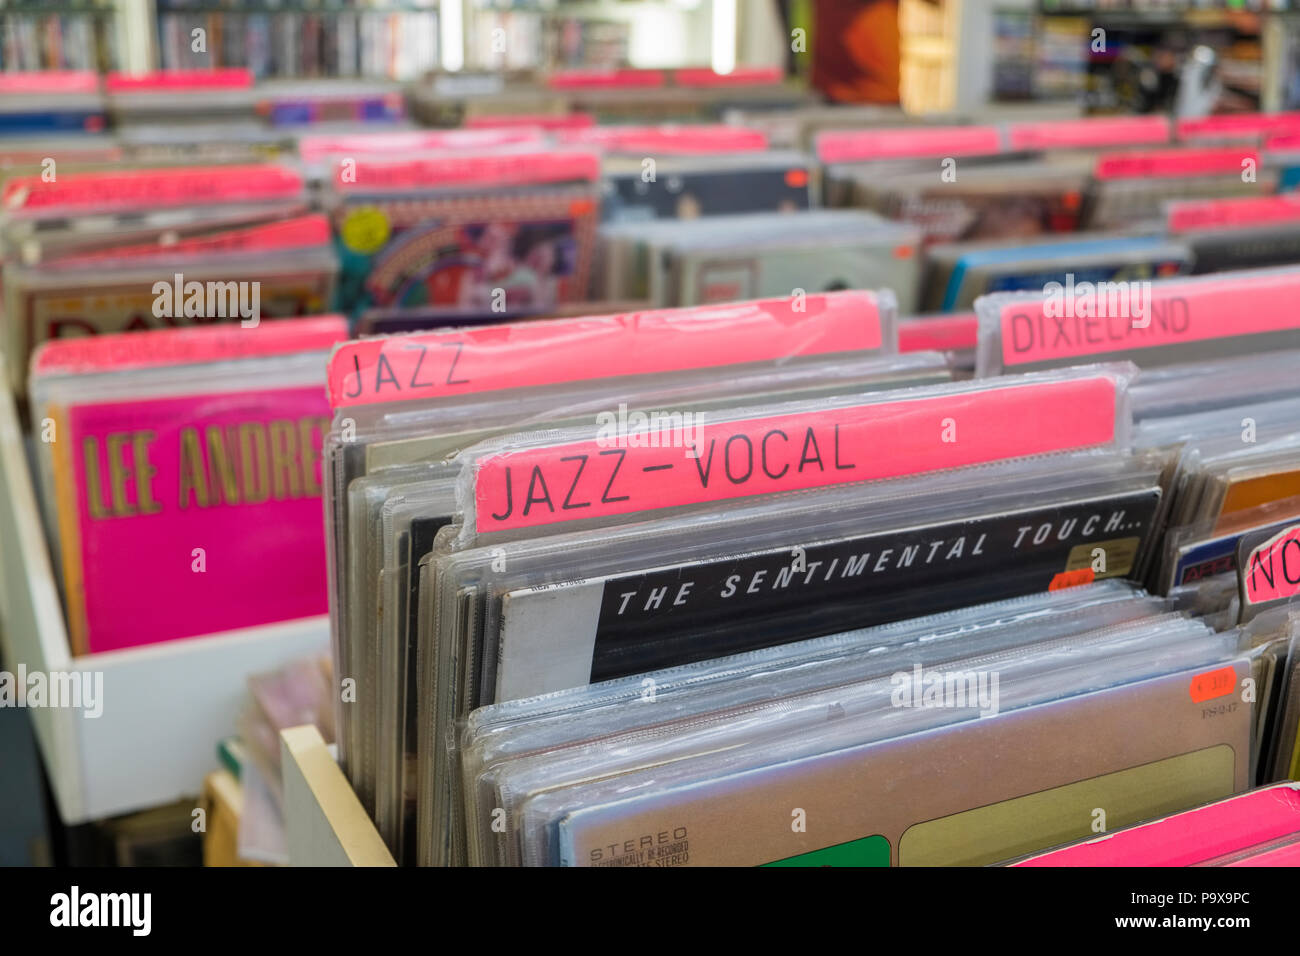 Vinyl records LPs and albums in racks at a record shop interior, England, UK - Stock Image